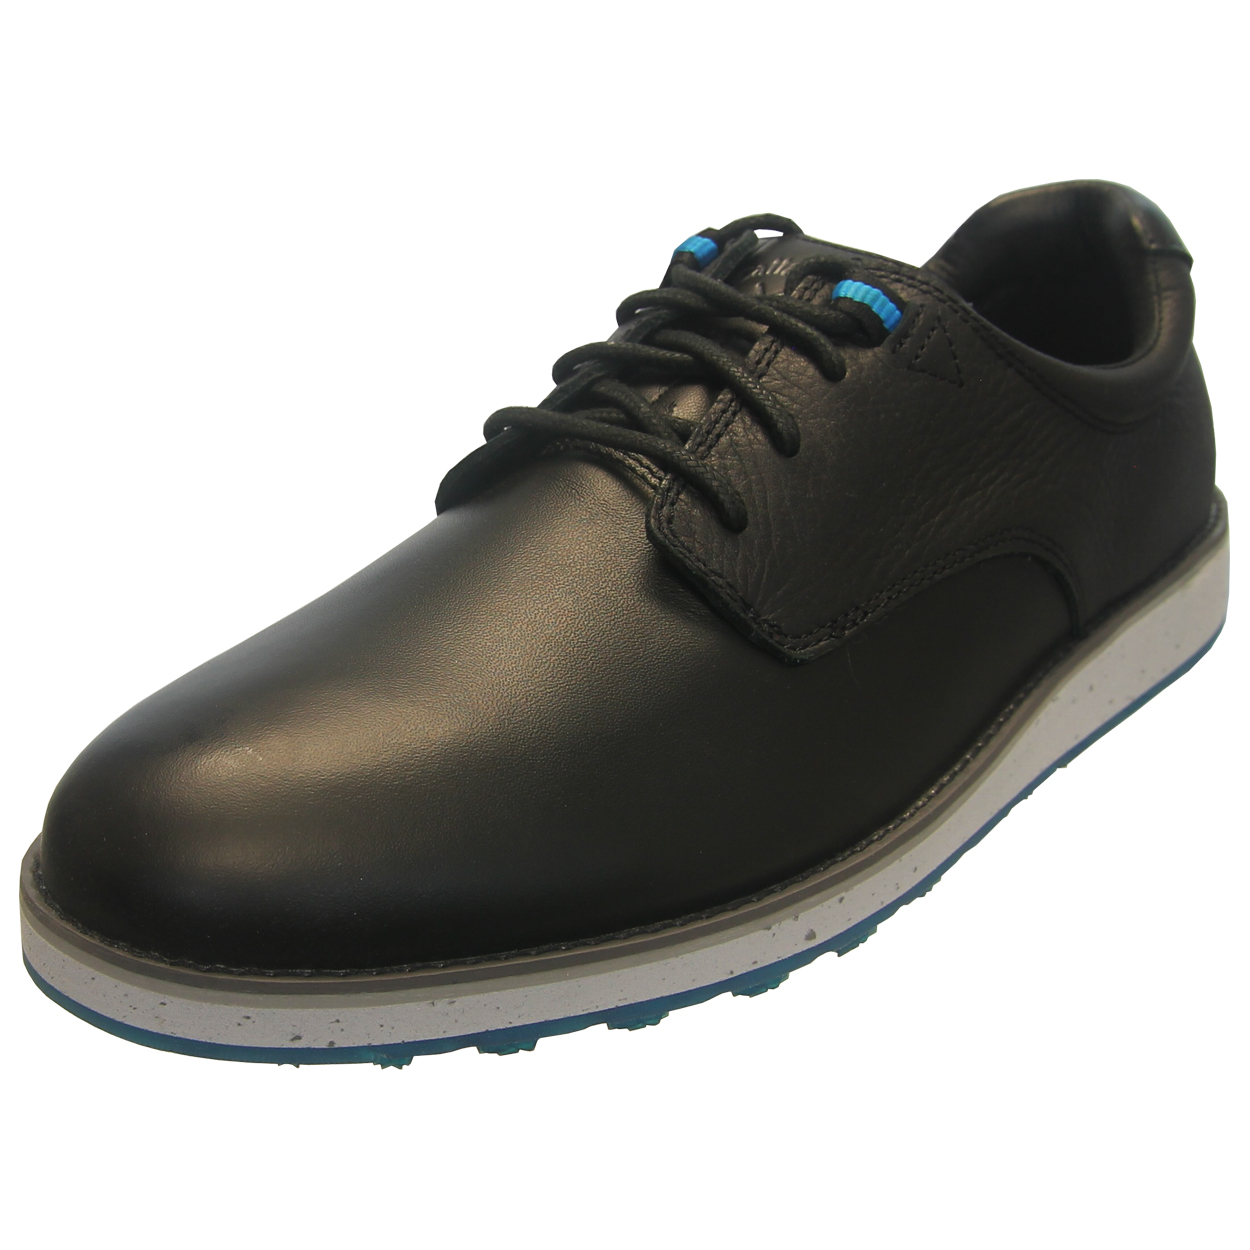 Callaway Swami Spikeless Leather Golf Shoe